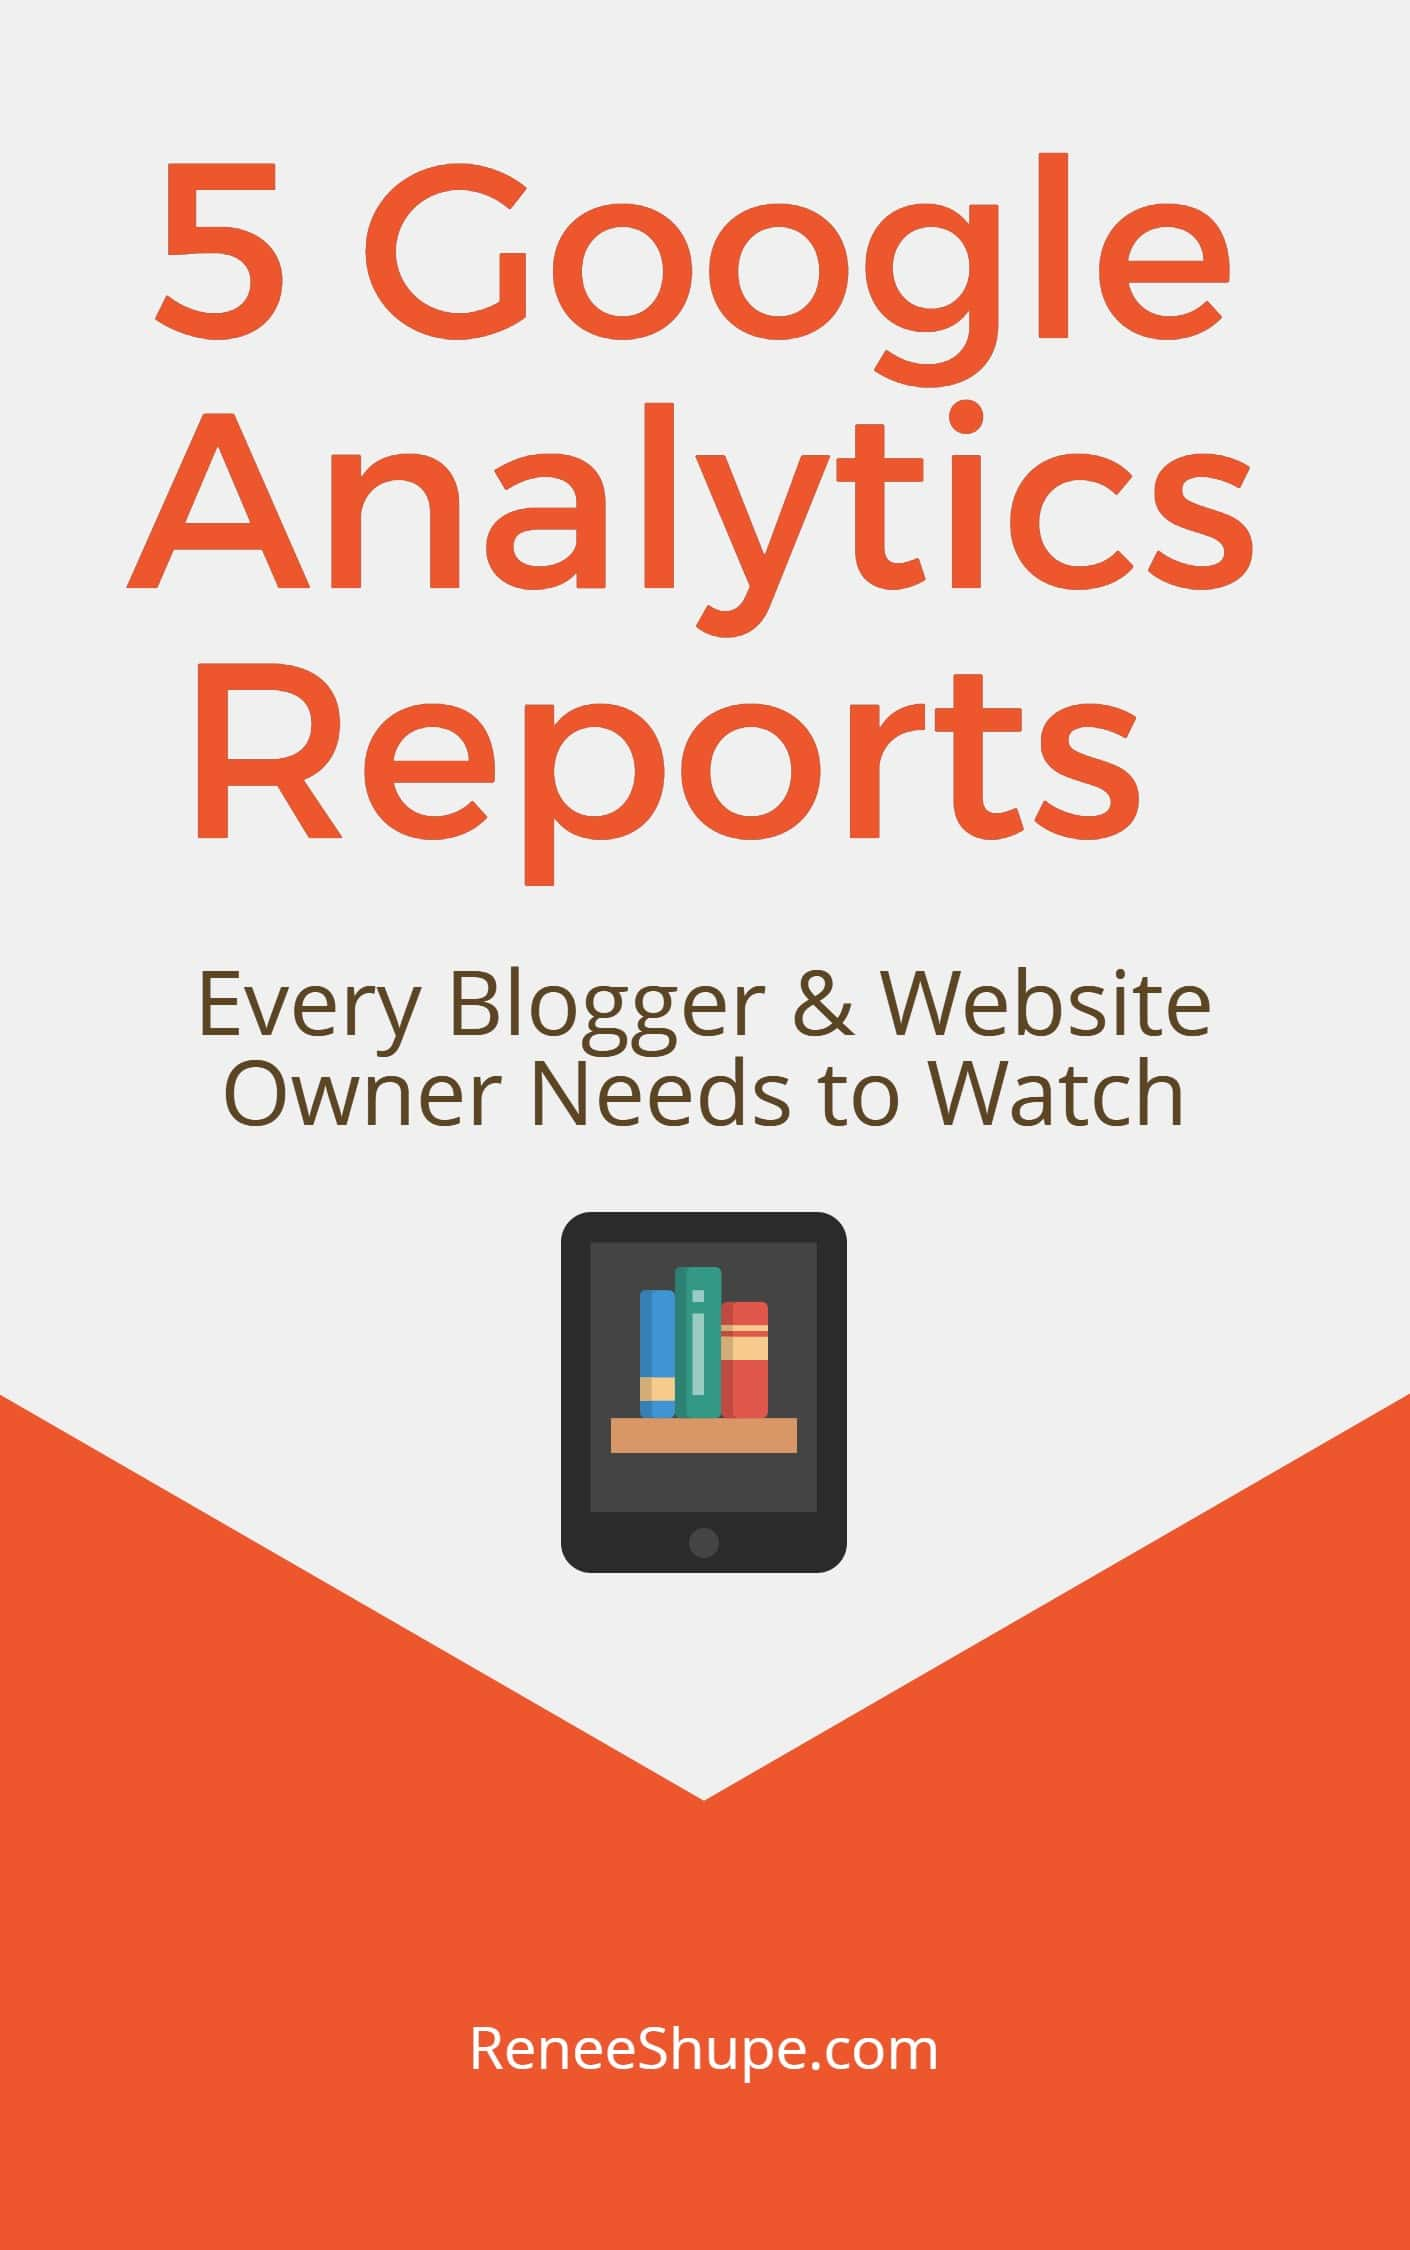 5 Google Analytics Reports Every Blogger Needs to Watch